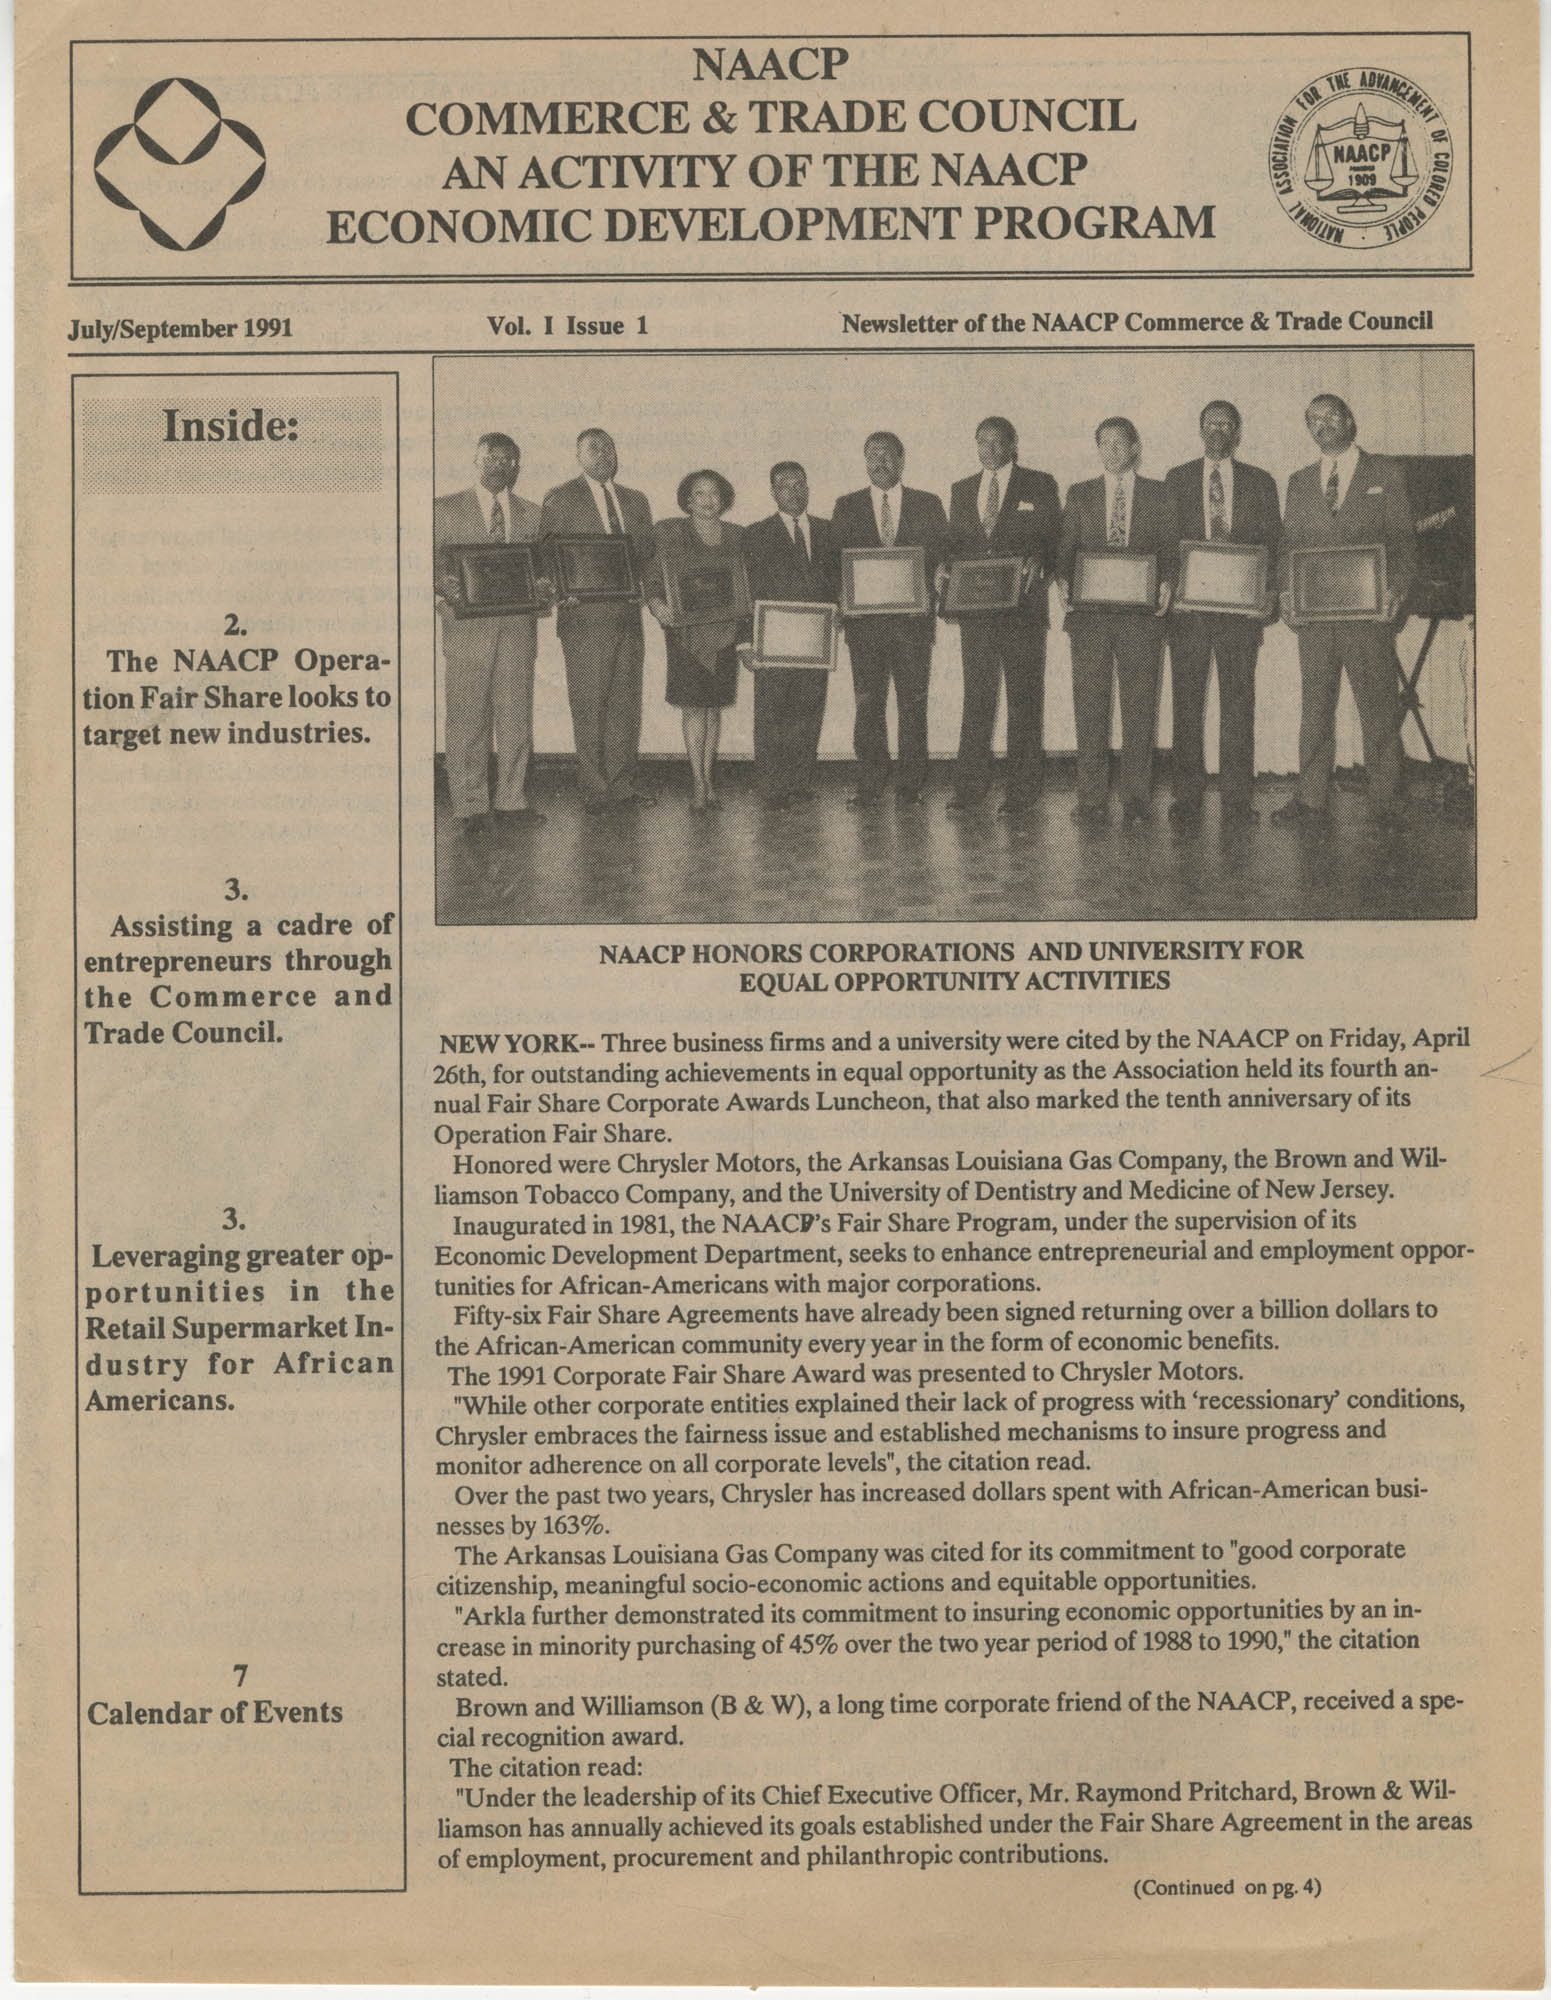 NAACP Commerce and Trade Council, July/September 1991, Vol. 1, Issue 1, Page 1